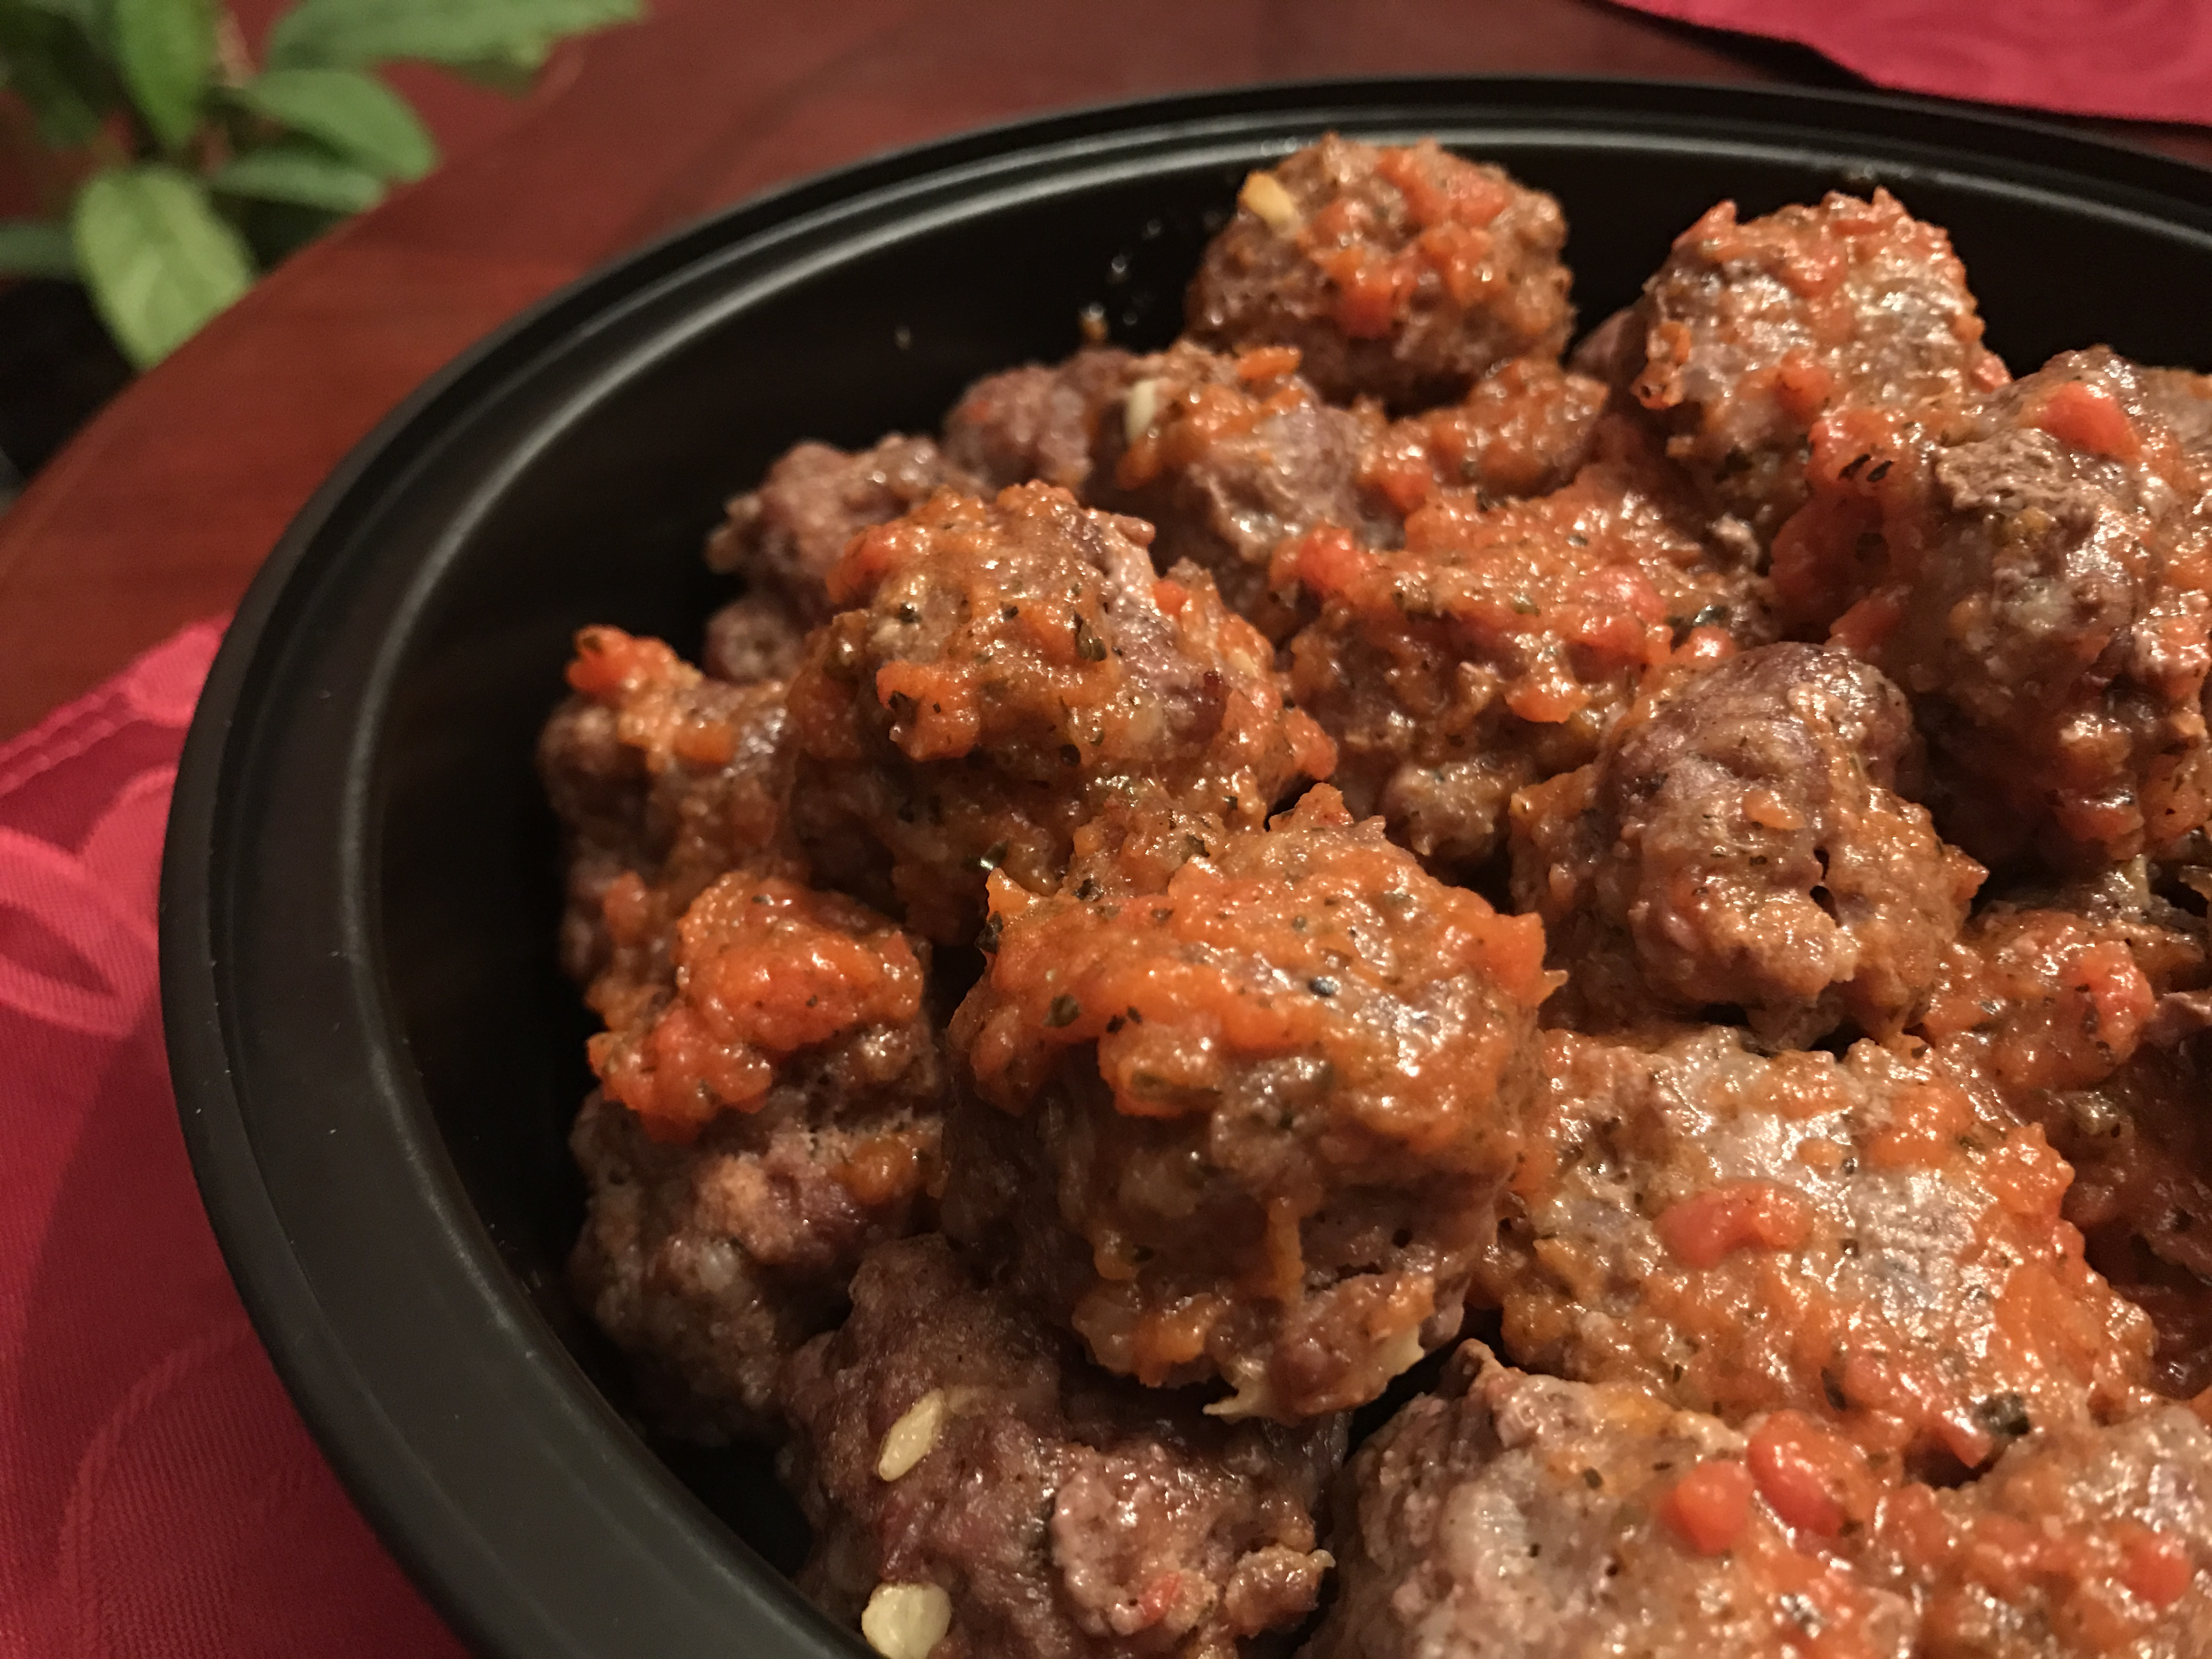 Paleo Sriracha Meatballs - Oh Snap! Let's Eat!